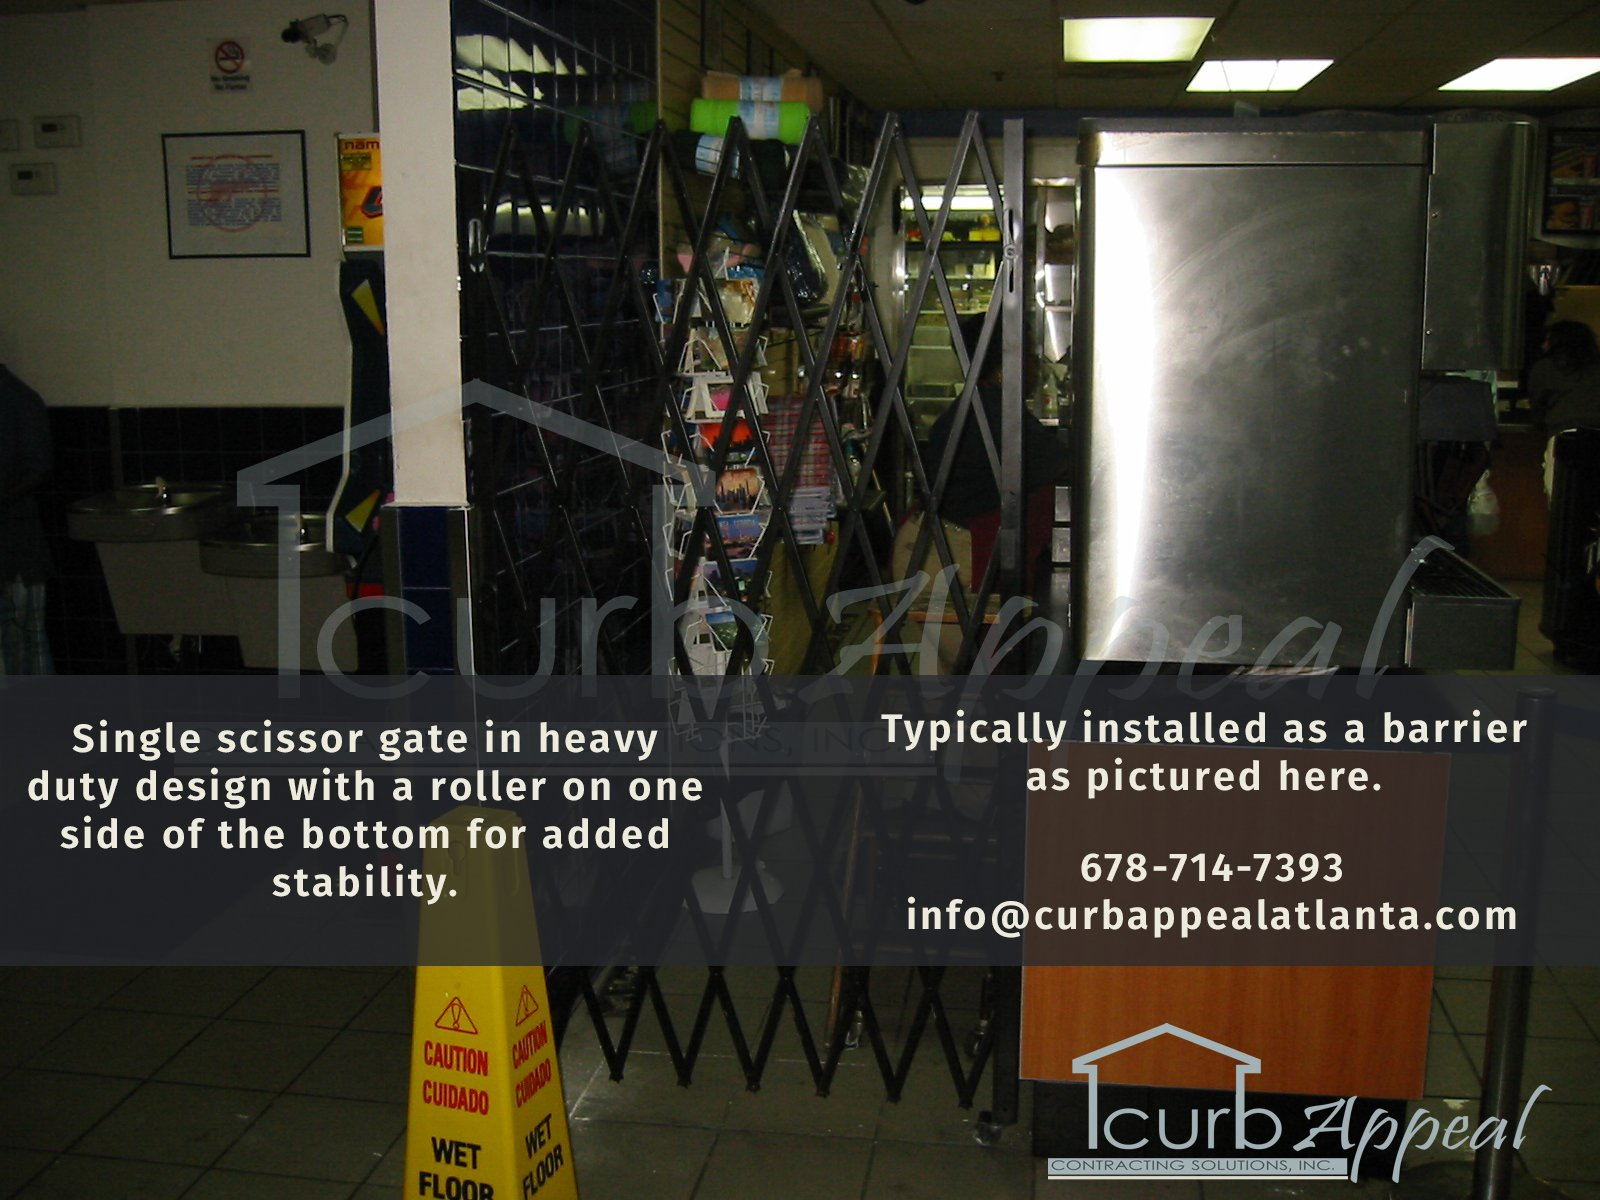 folding gate restricting access to food service area